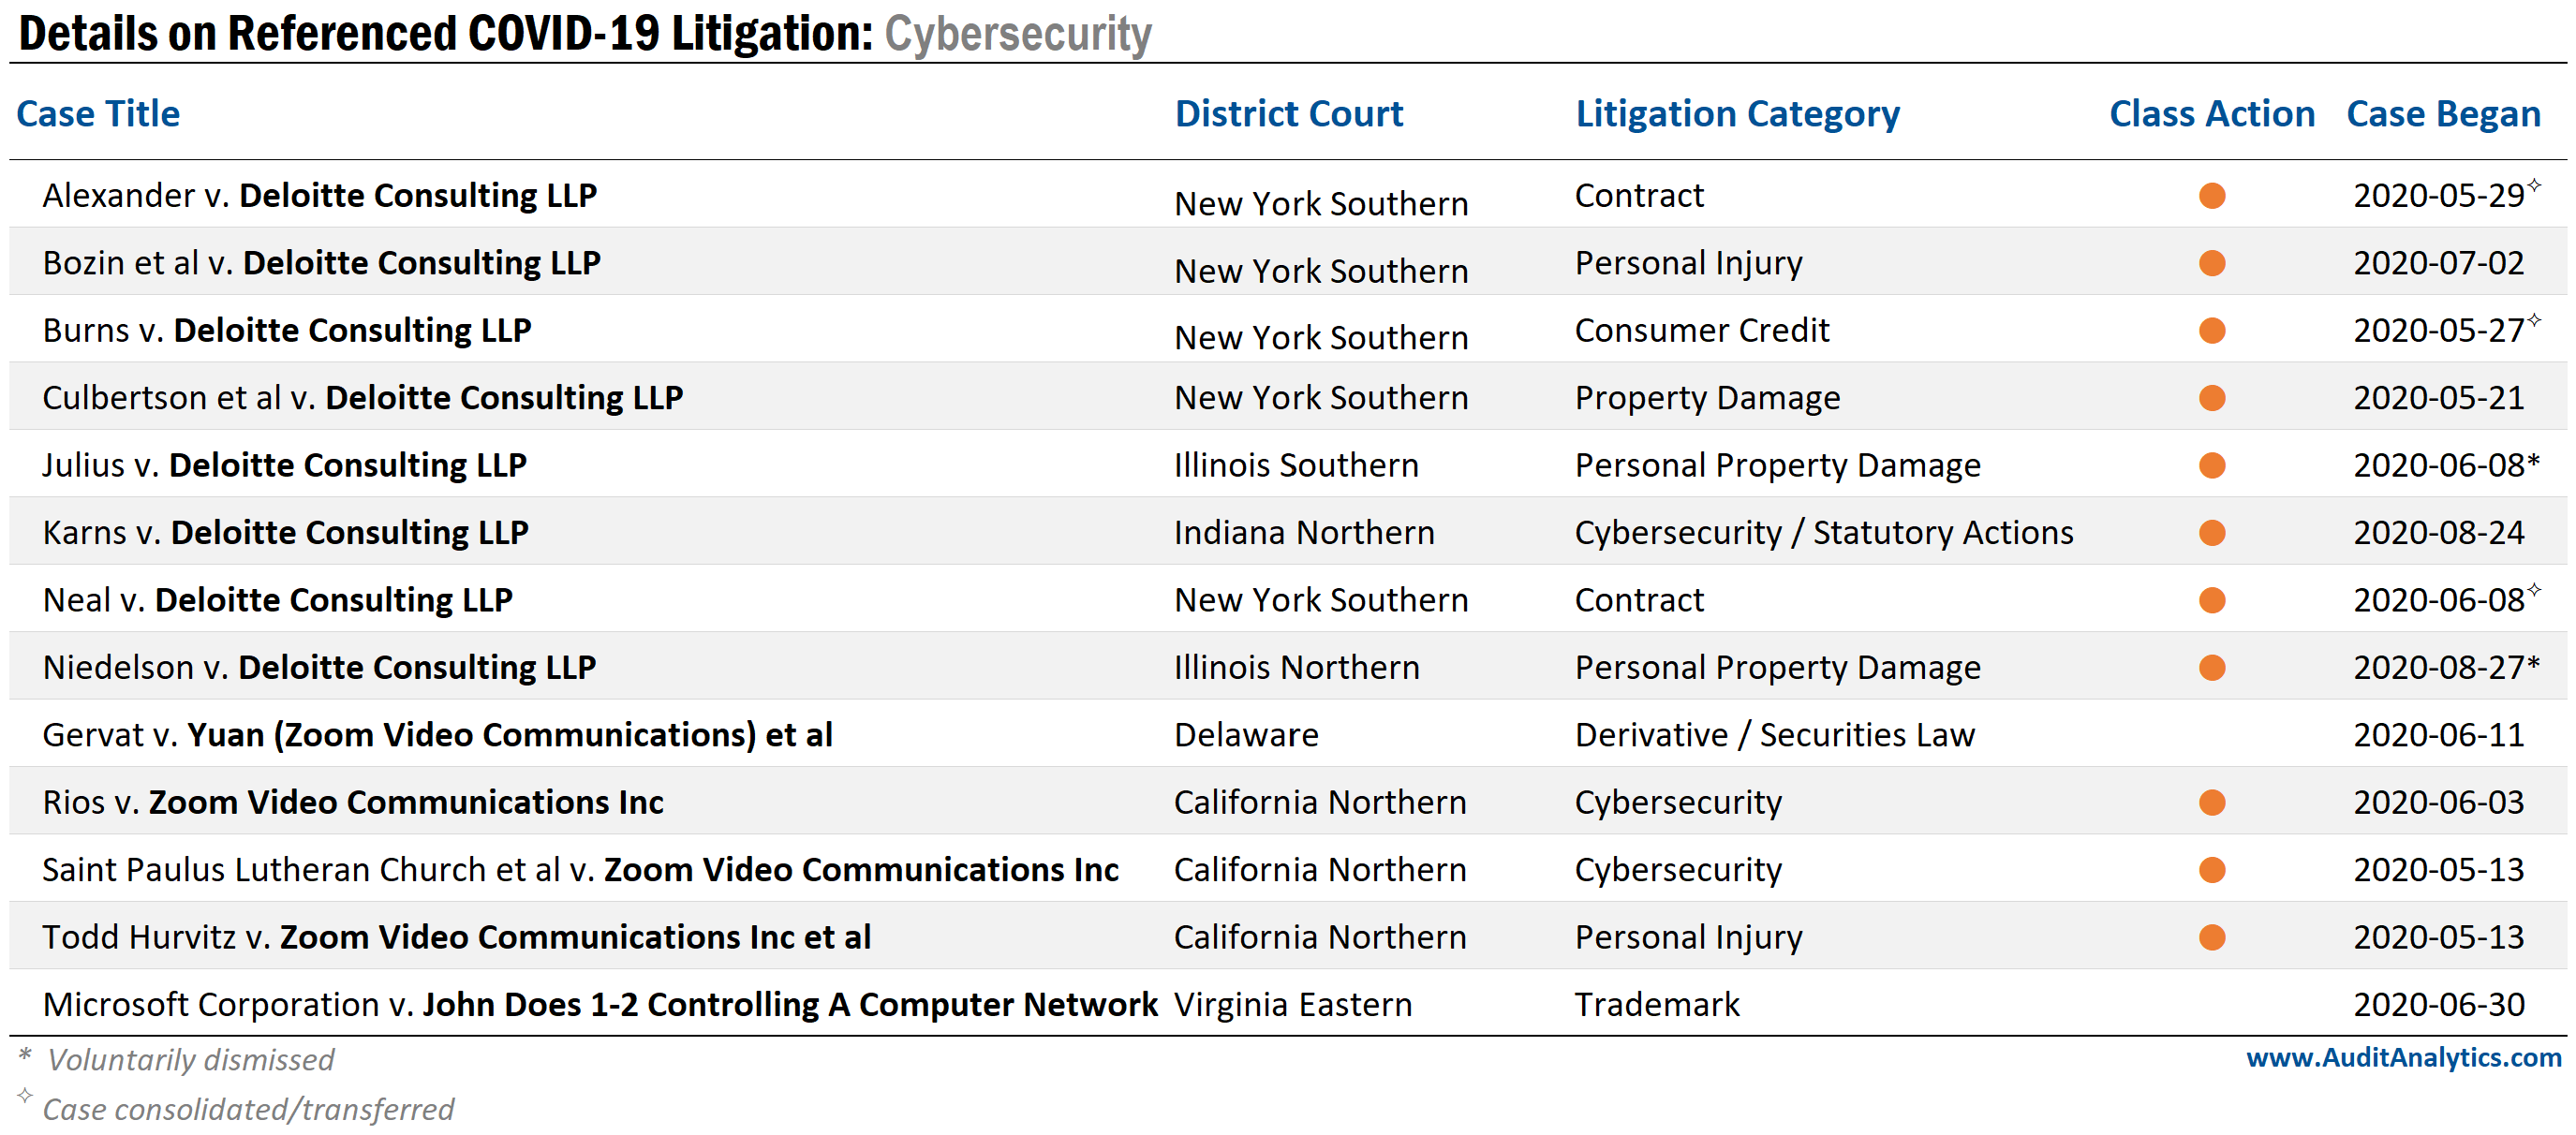 Cybersecurity litigation stemming from COVID-19